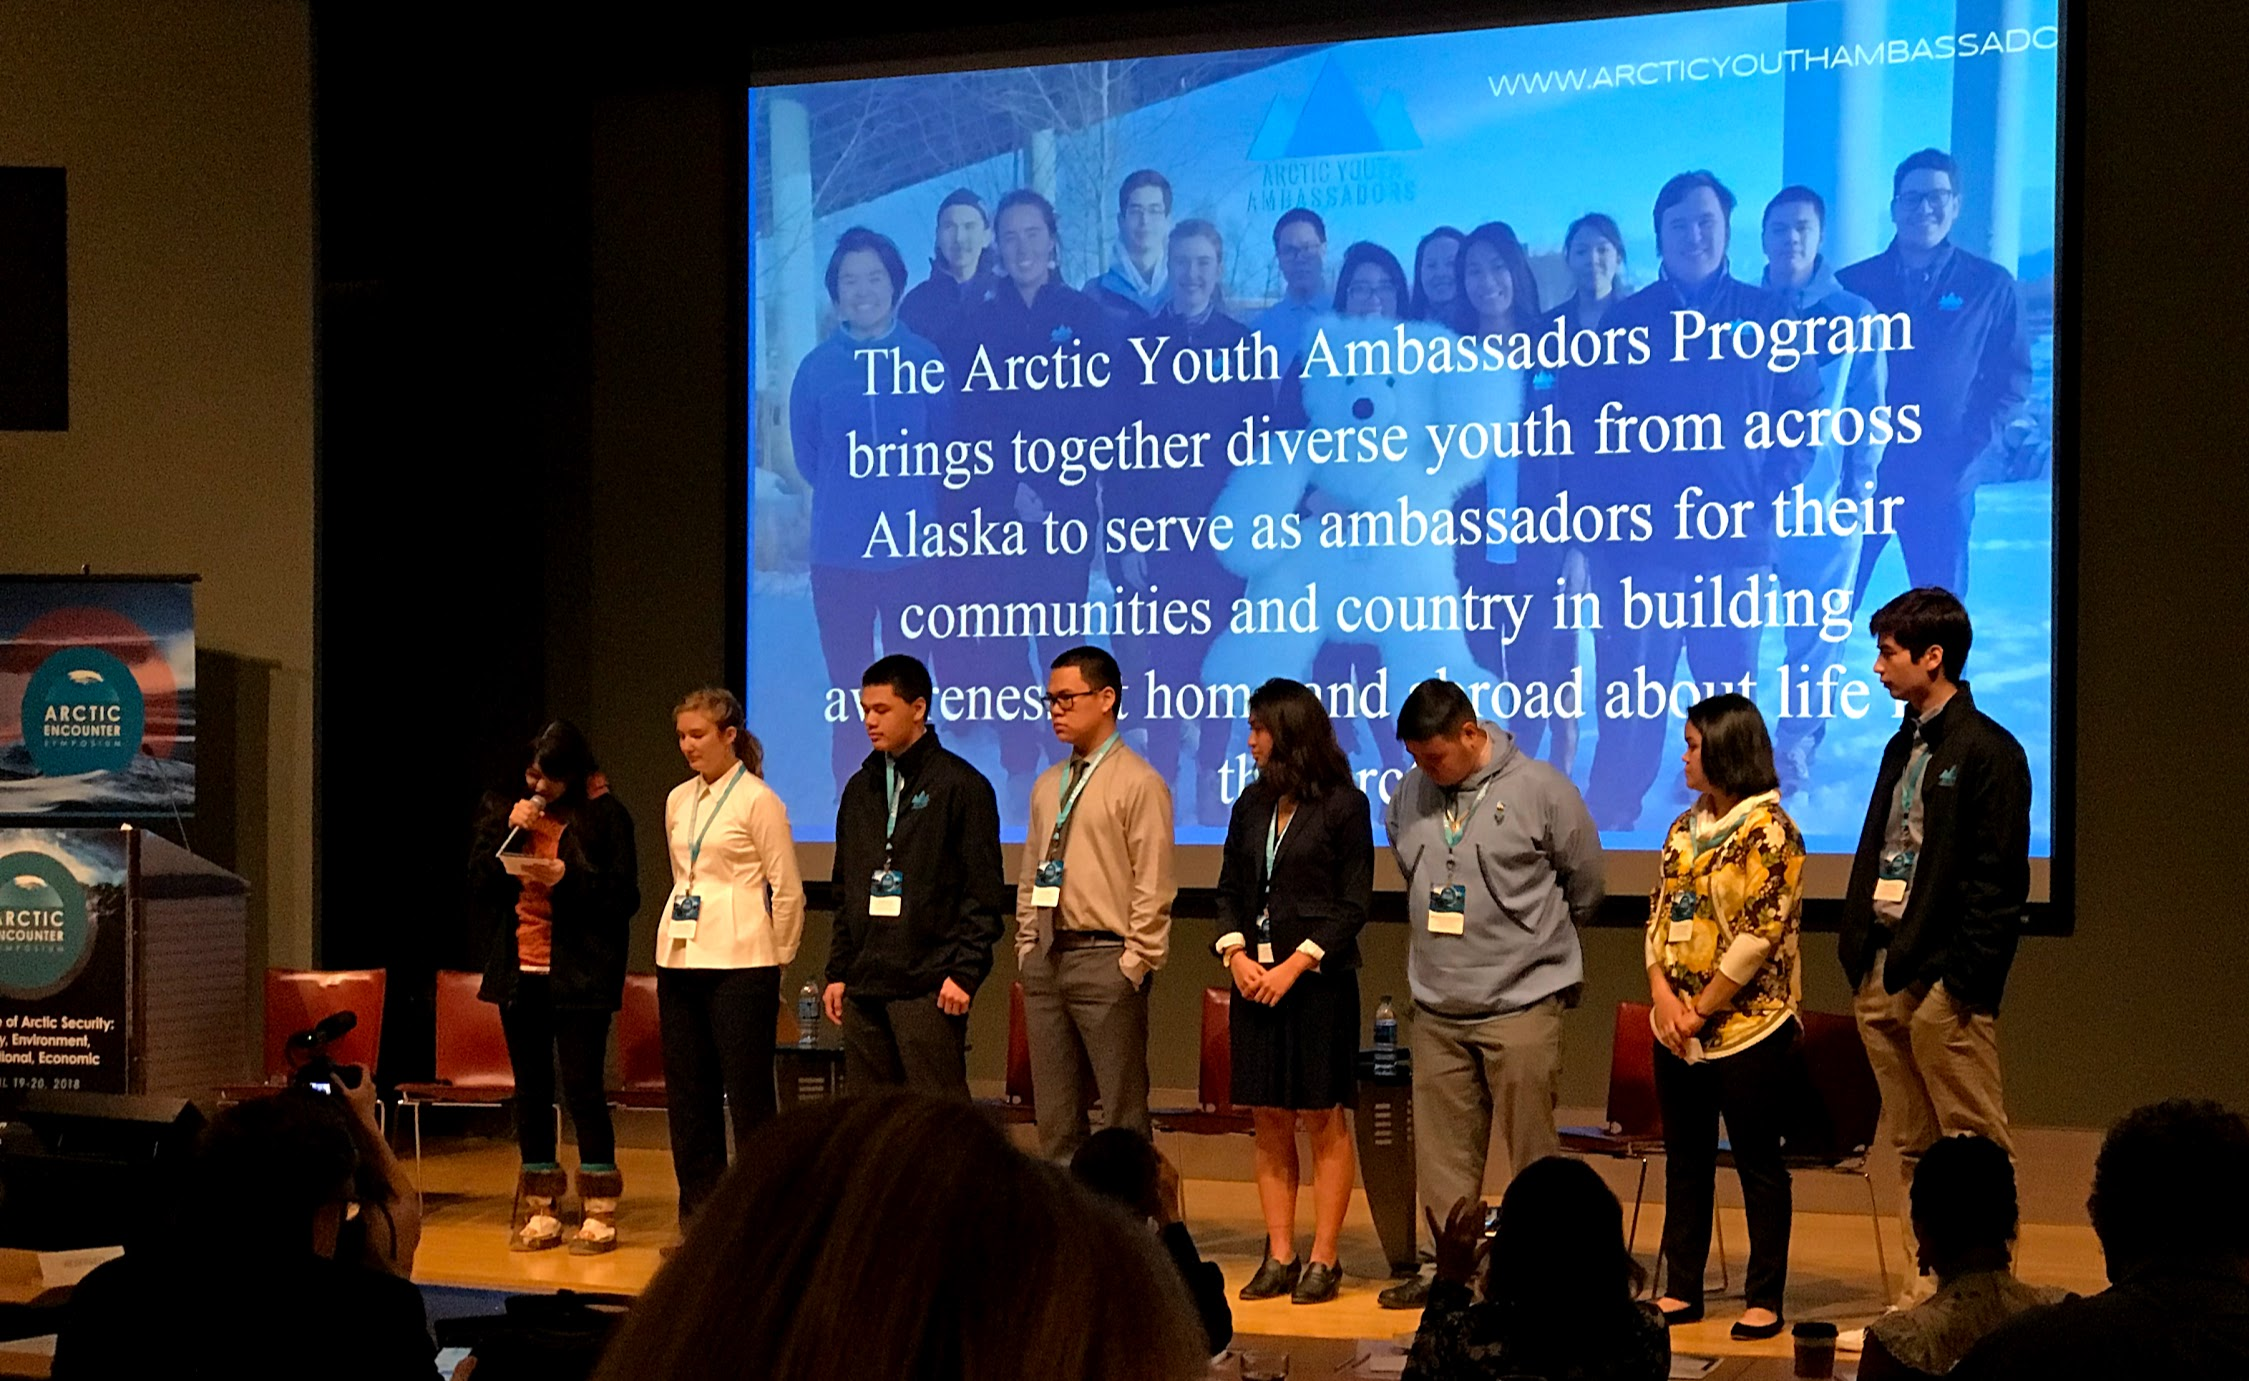 Arctic Youth Ambassadors present in front of policymakers at the 5th Annual Arctic Encounter Symposium in Seattle, April 19-20, 2018.